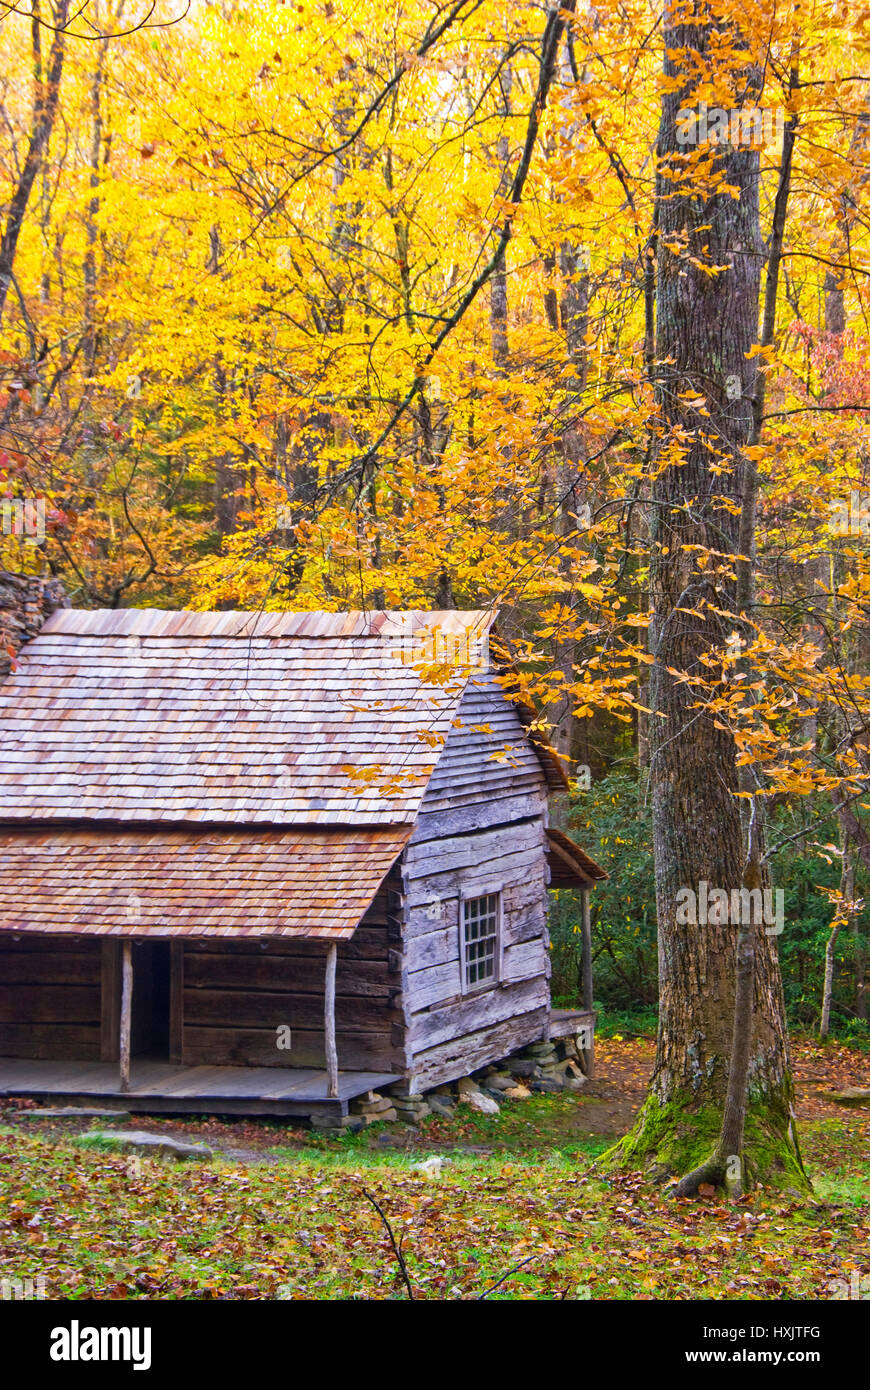 Log cabin in Smoky Mountains of Tennessee. - Stock Image